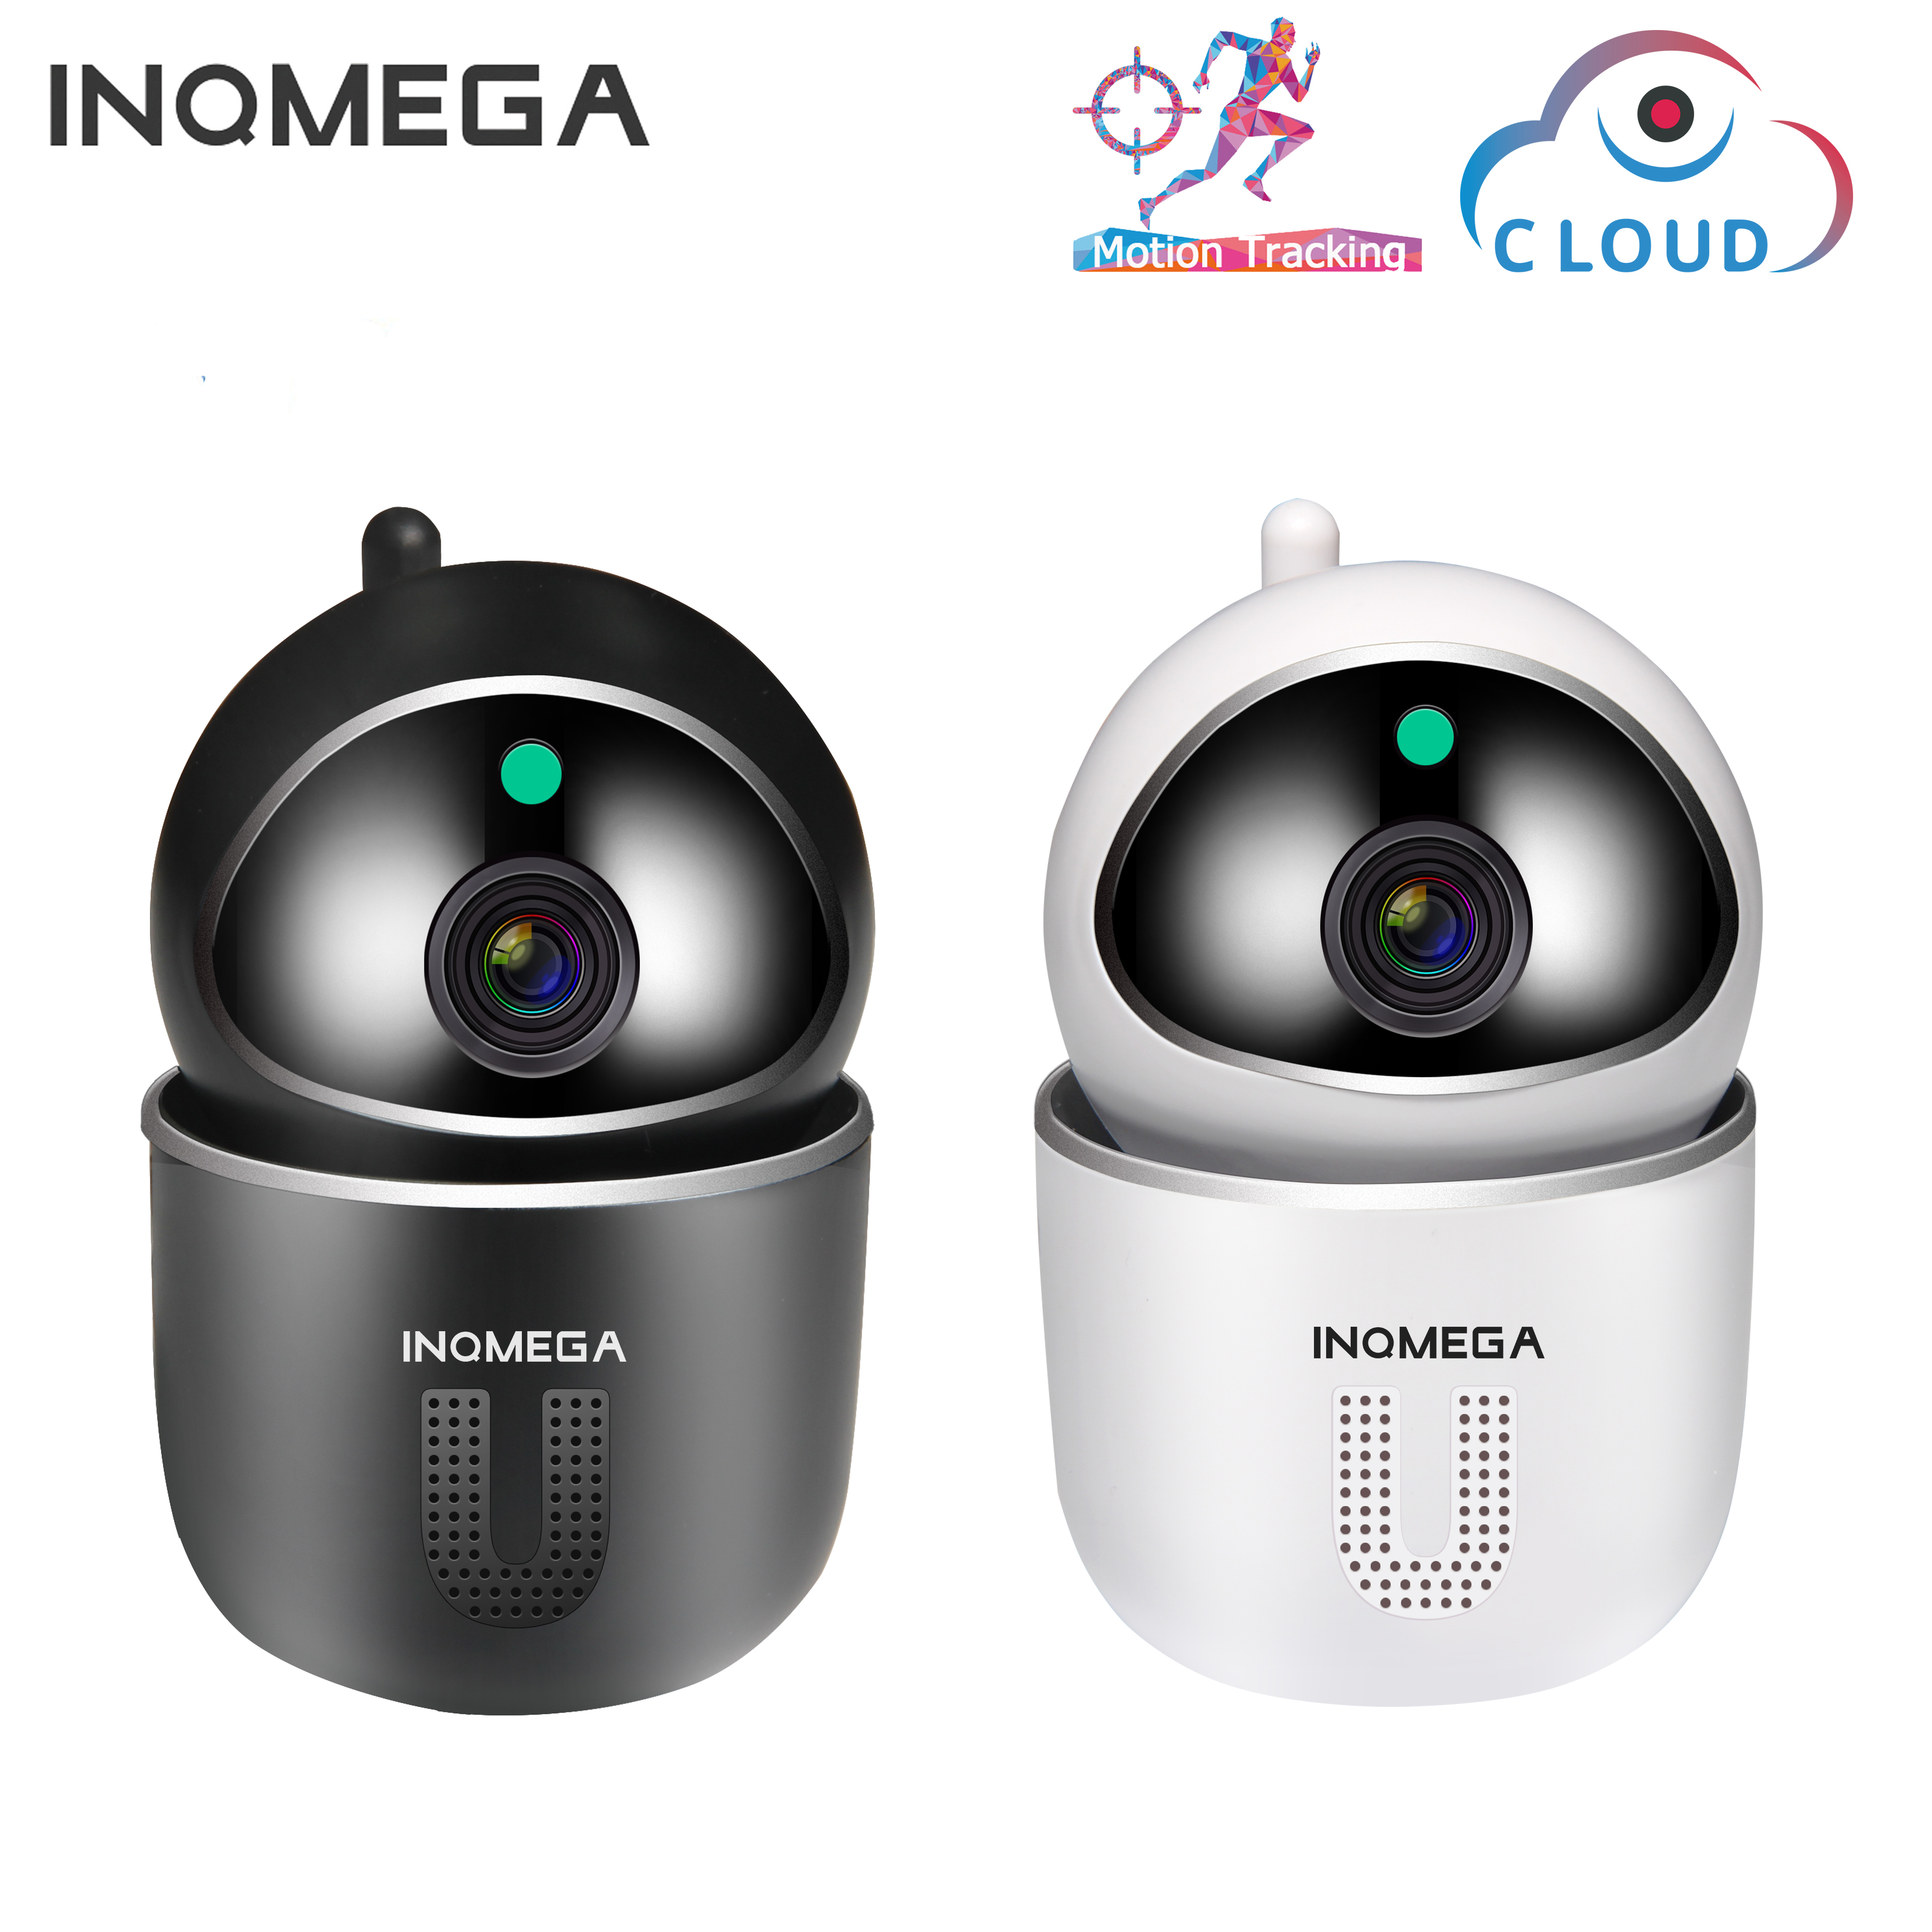 INQMEGA U Shape 1080P  Cloud IP Camera Auto Tracking Intelligent   Home Security Wireless WiFi CCTV Camera With Net Port Baby M